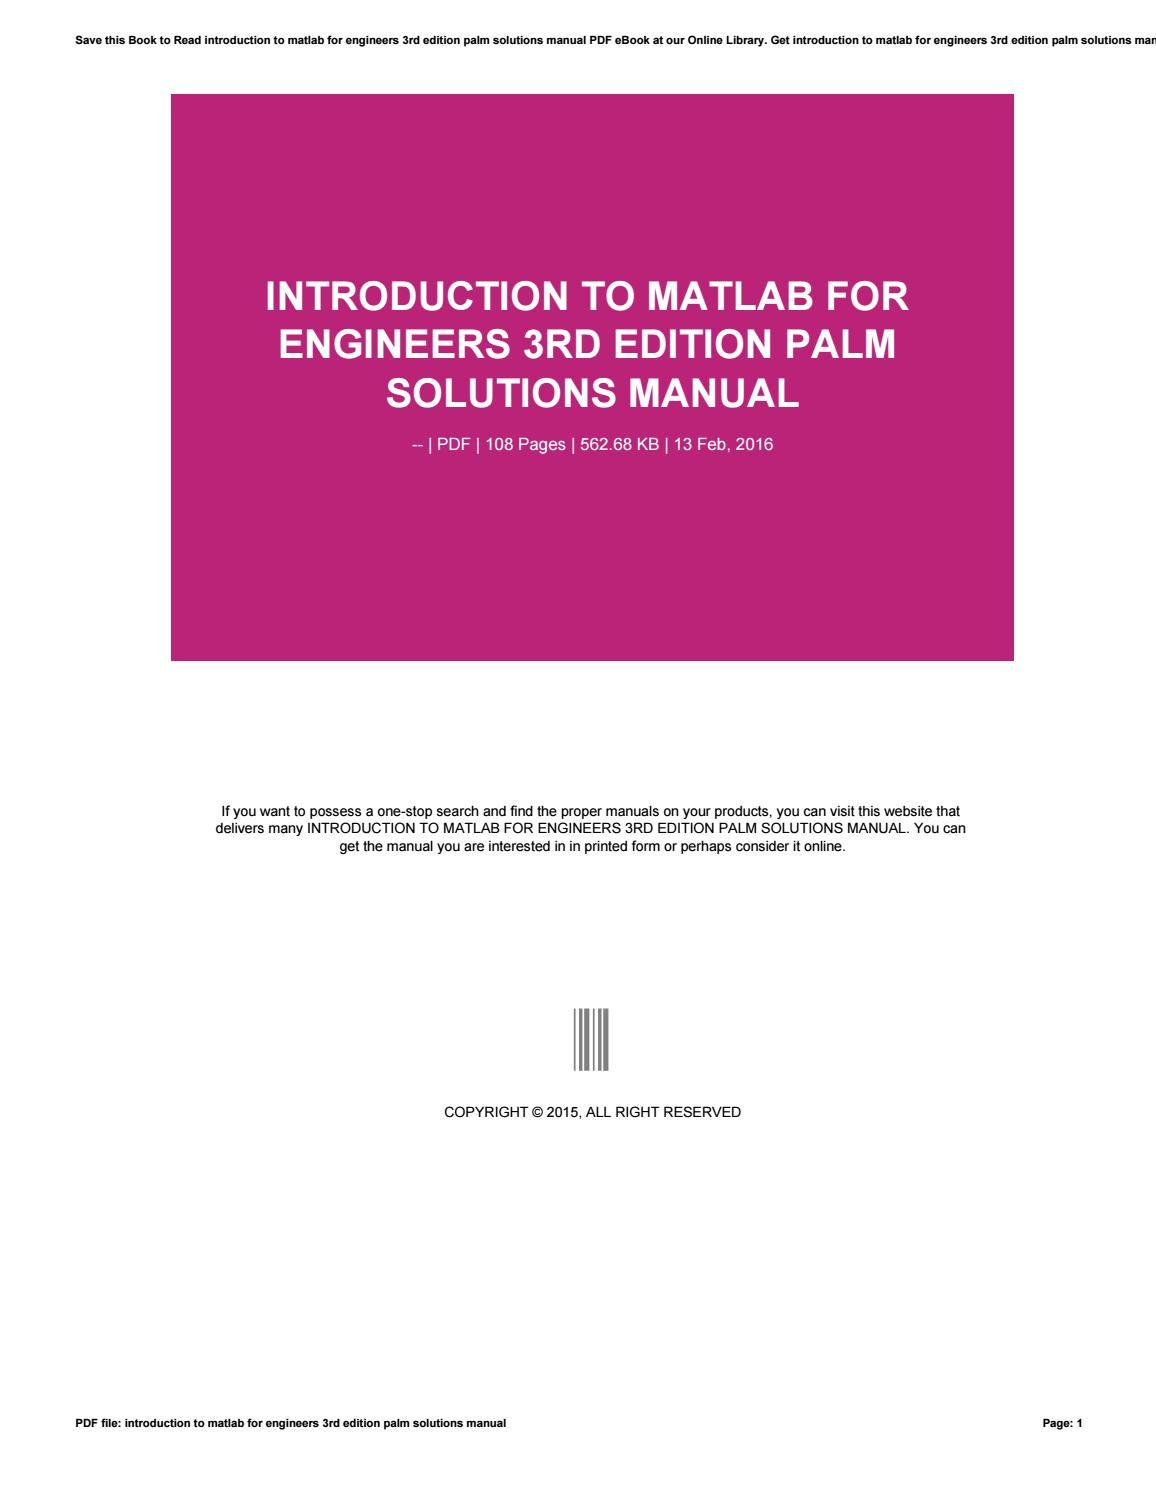 Introduction To Matlab For Engineers 3rd Edition Palm